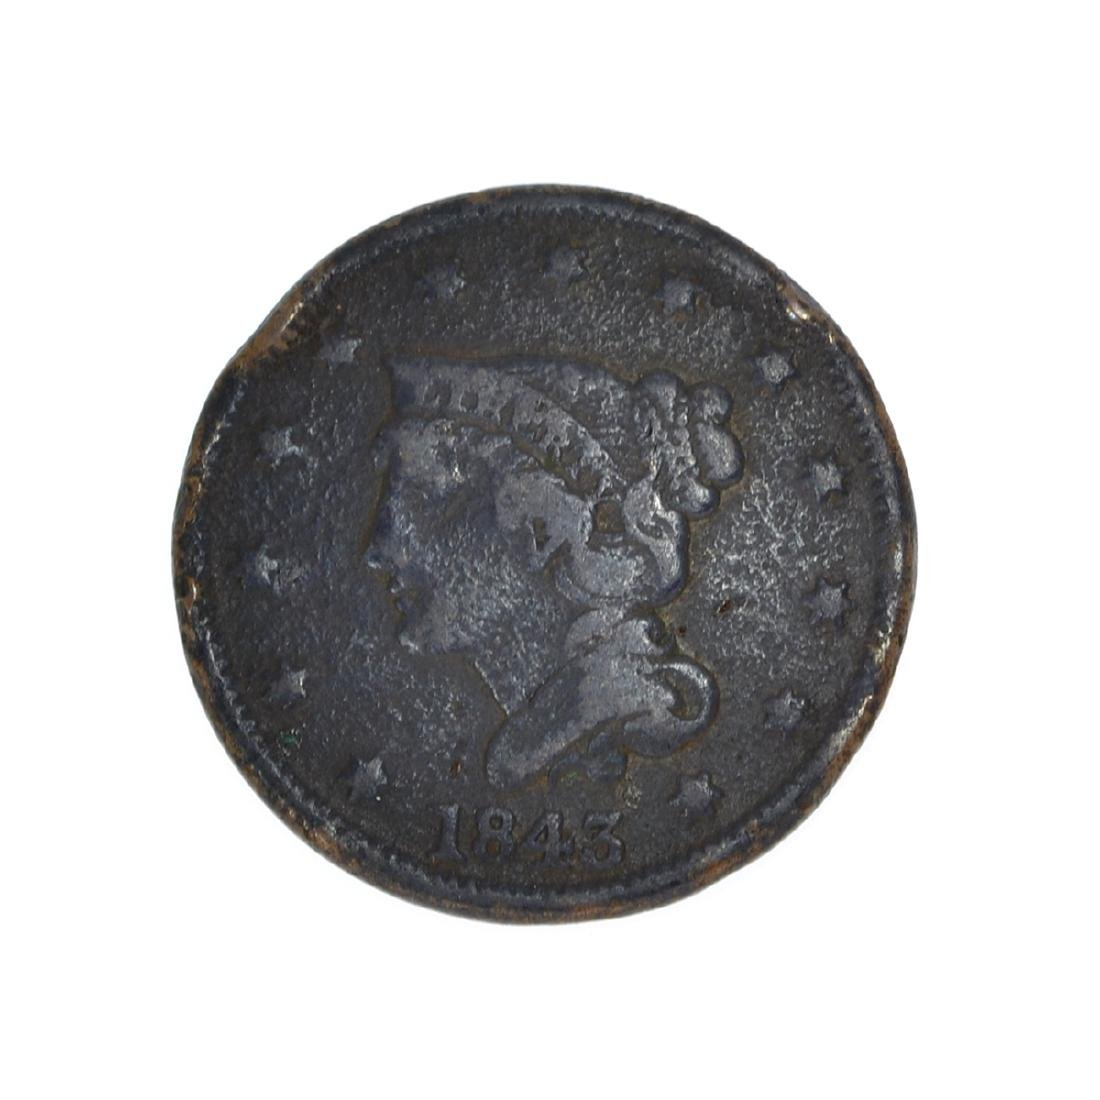 Rare 1843 Large Cent Coin